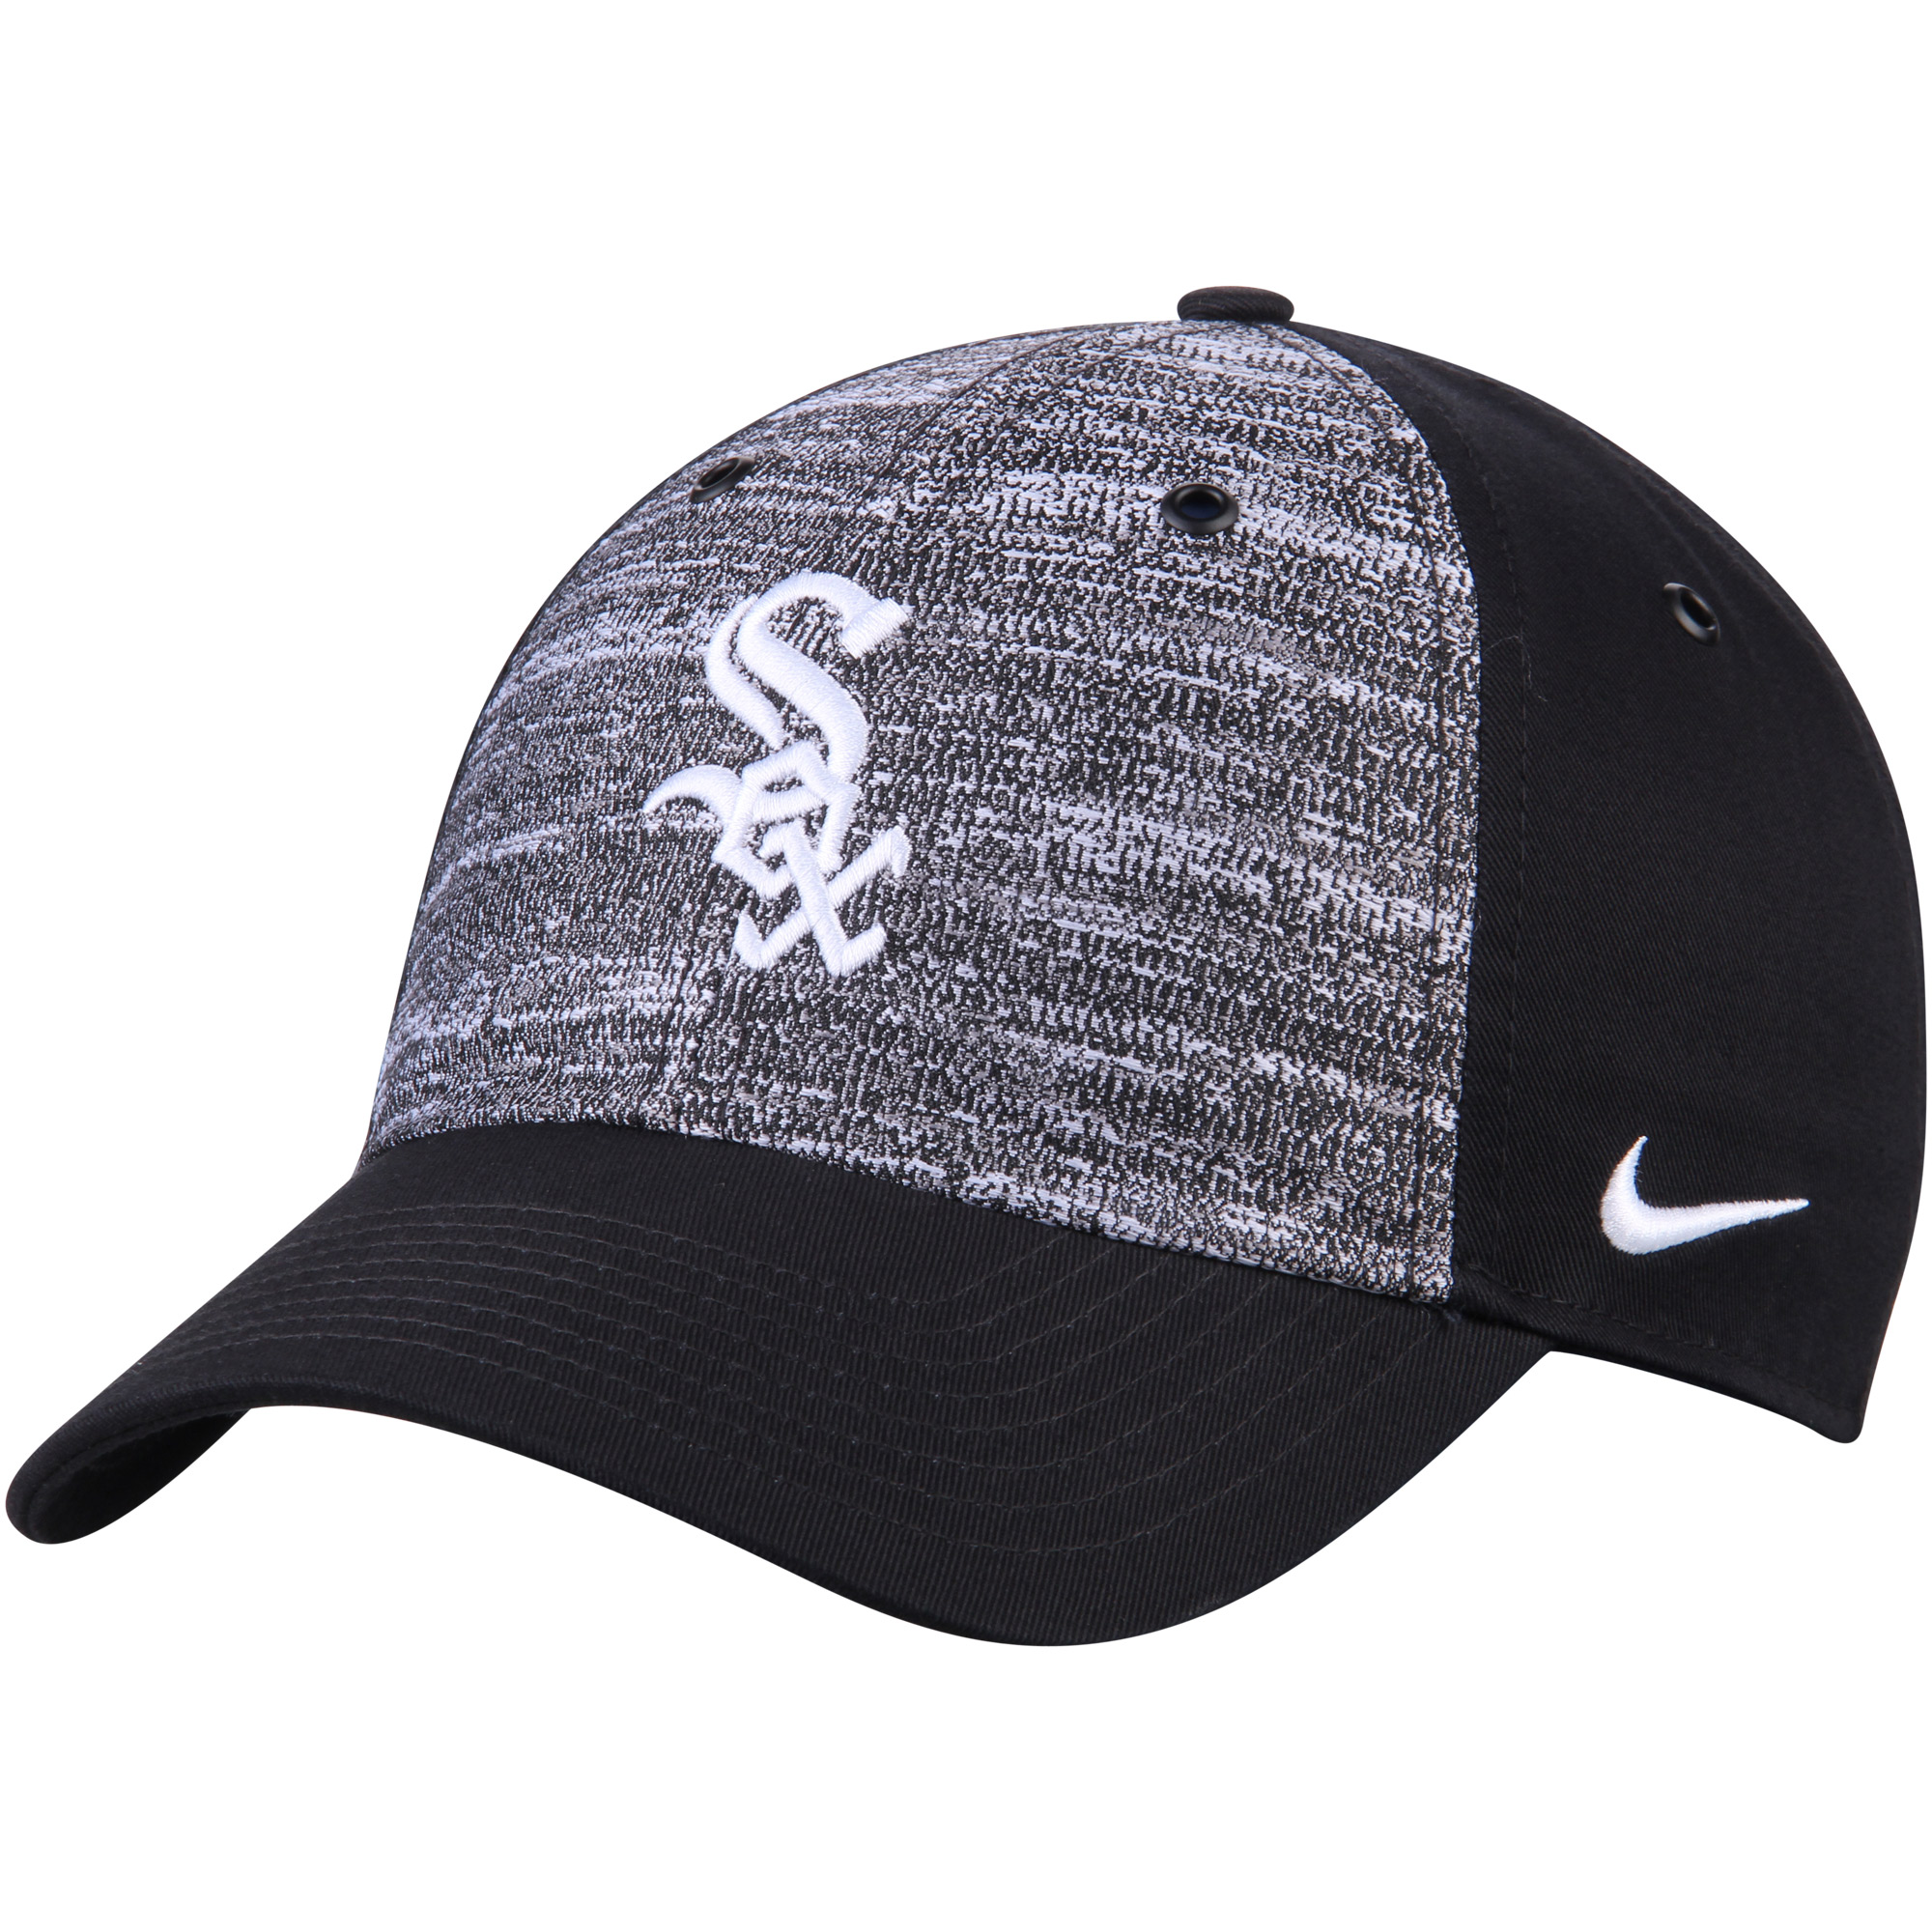 various colors c5dab 5d21f ... low cost product image chicago white sox nike new day h86 adjustable hat  heathered gray black